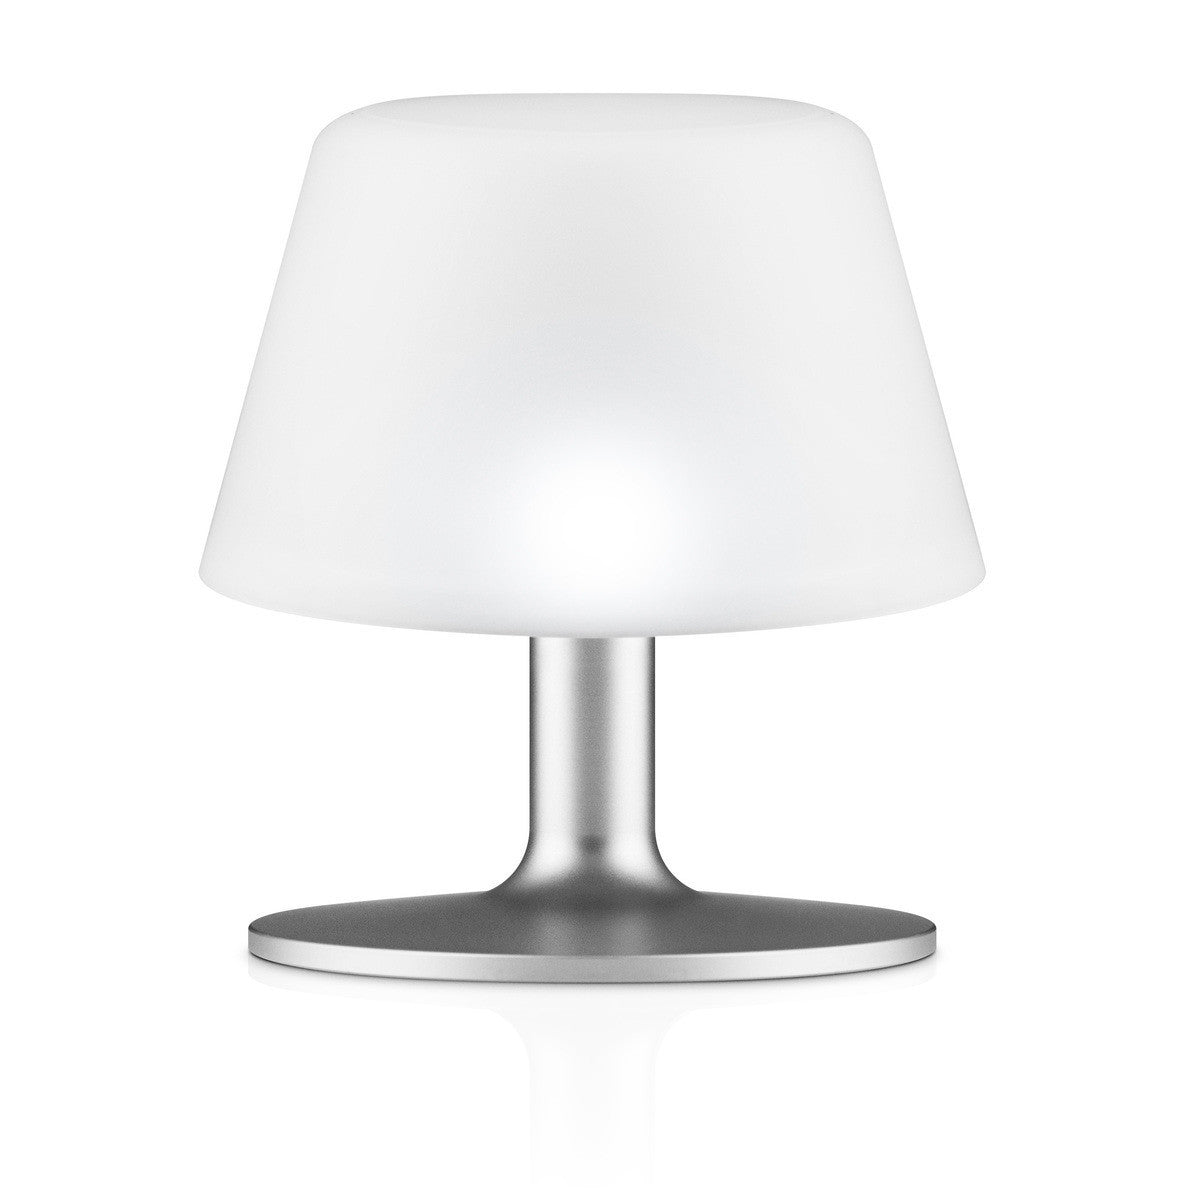 Eva Solo Sun Light Outdoor Lamp